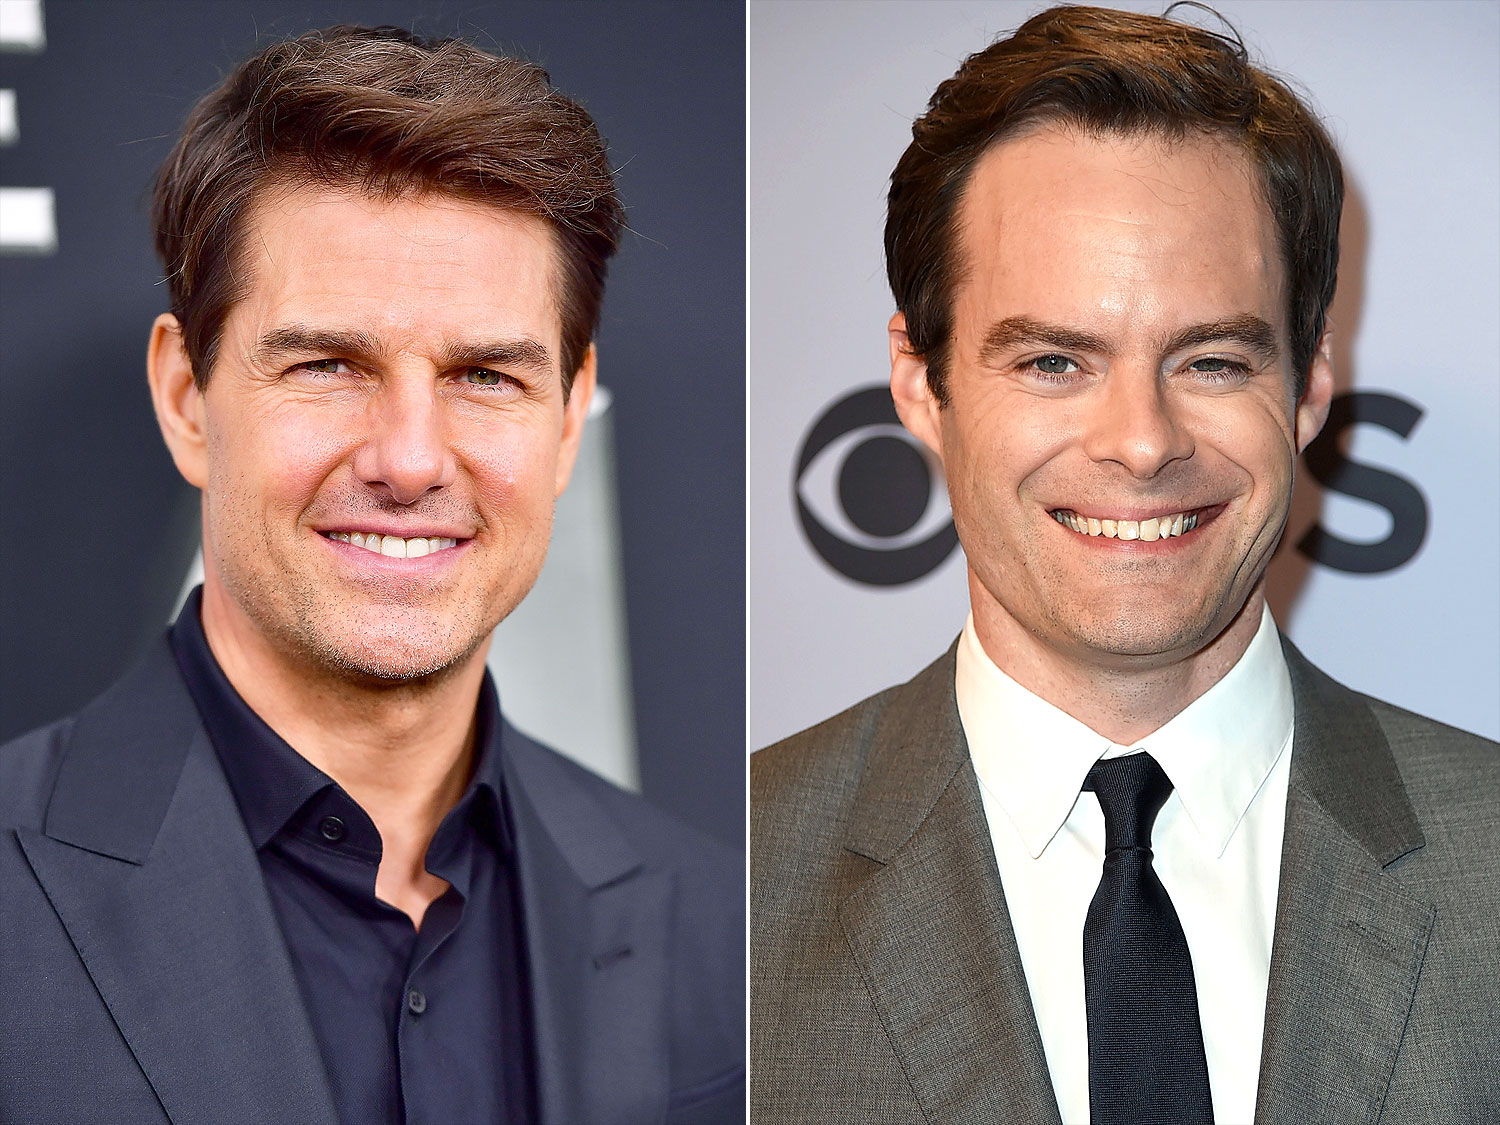 TOM CRUISE GOT BILL HADER ON A FLIGHT TO SEE HIS FAMILY AHEAD OF SCHEDULE